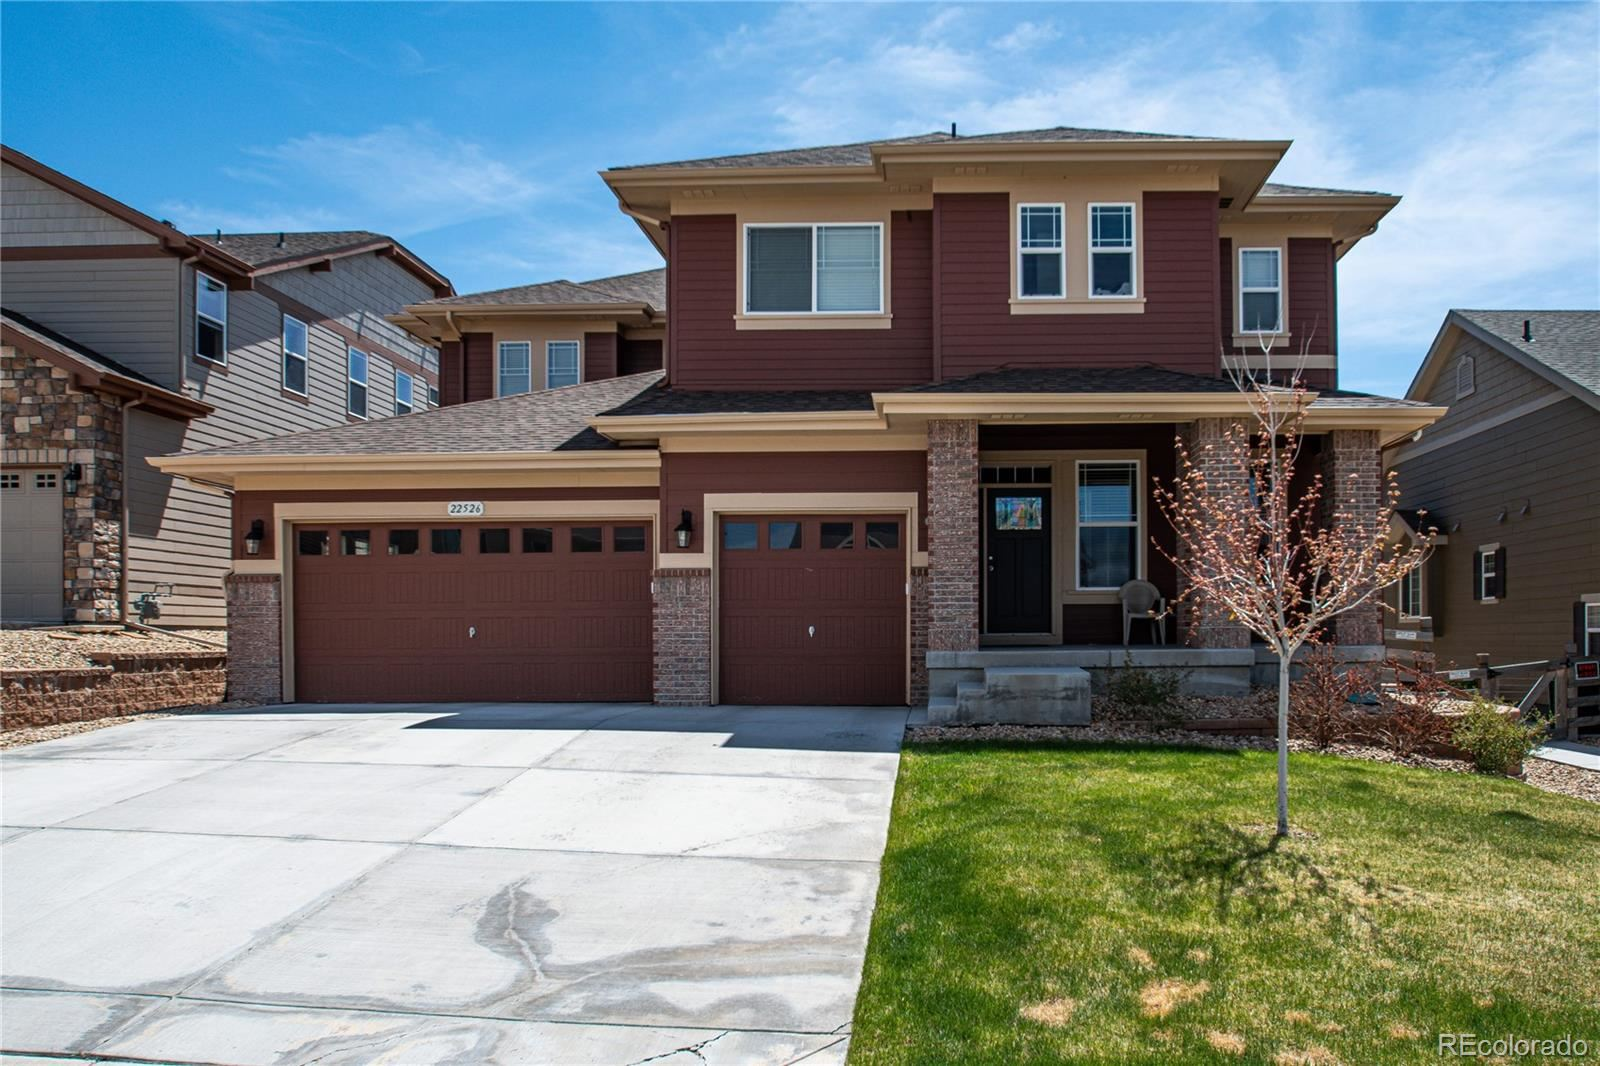 22526 E Union Place, Aurora, CO 80015 - #: 8888940